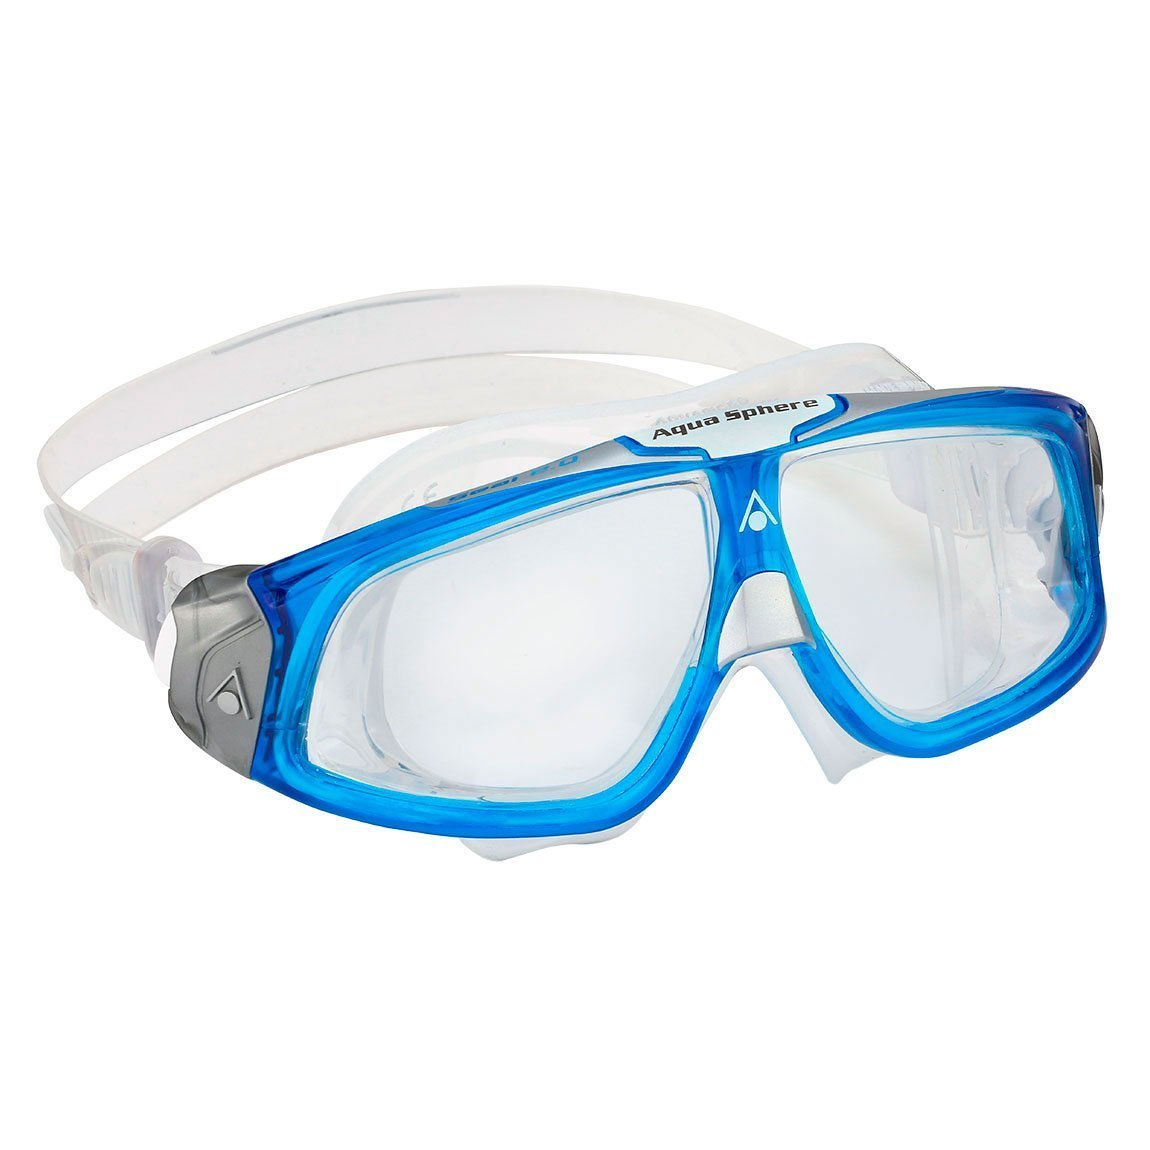 Seal 2.0 Mask Clear Lens